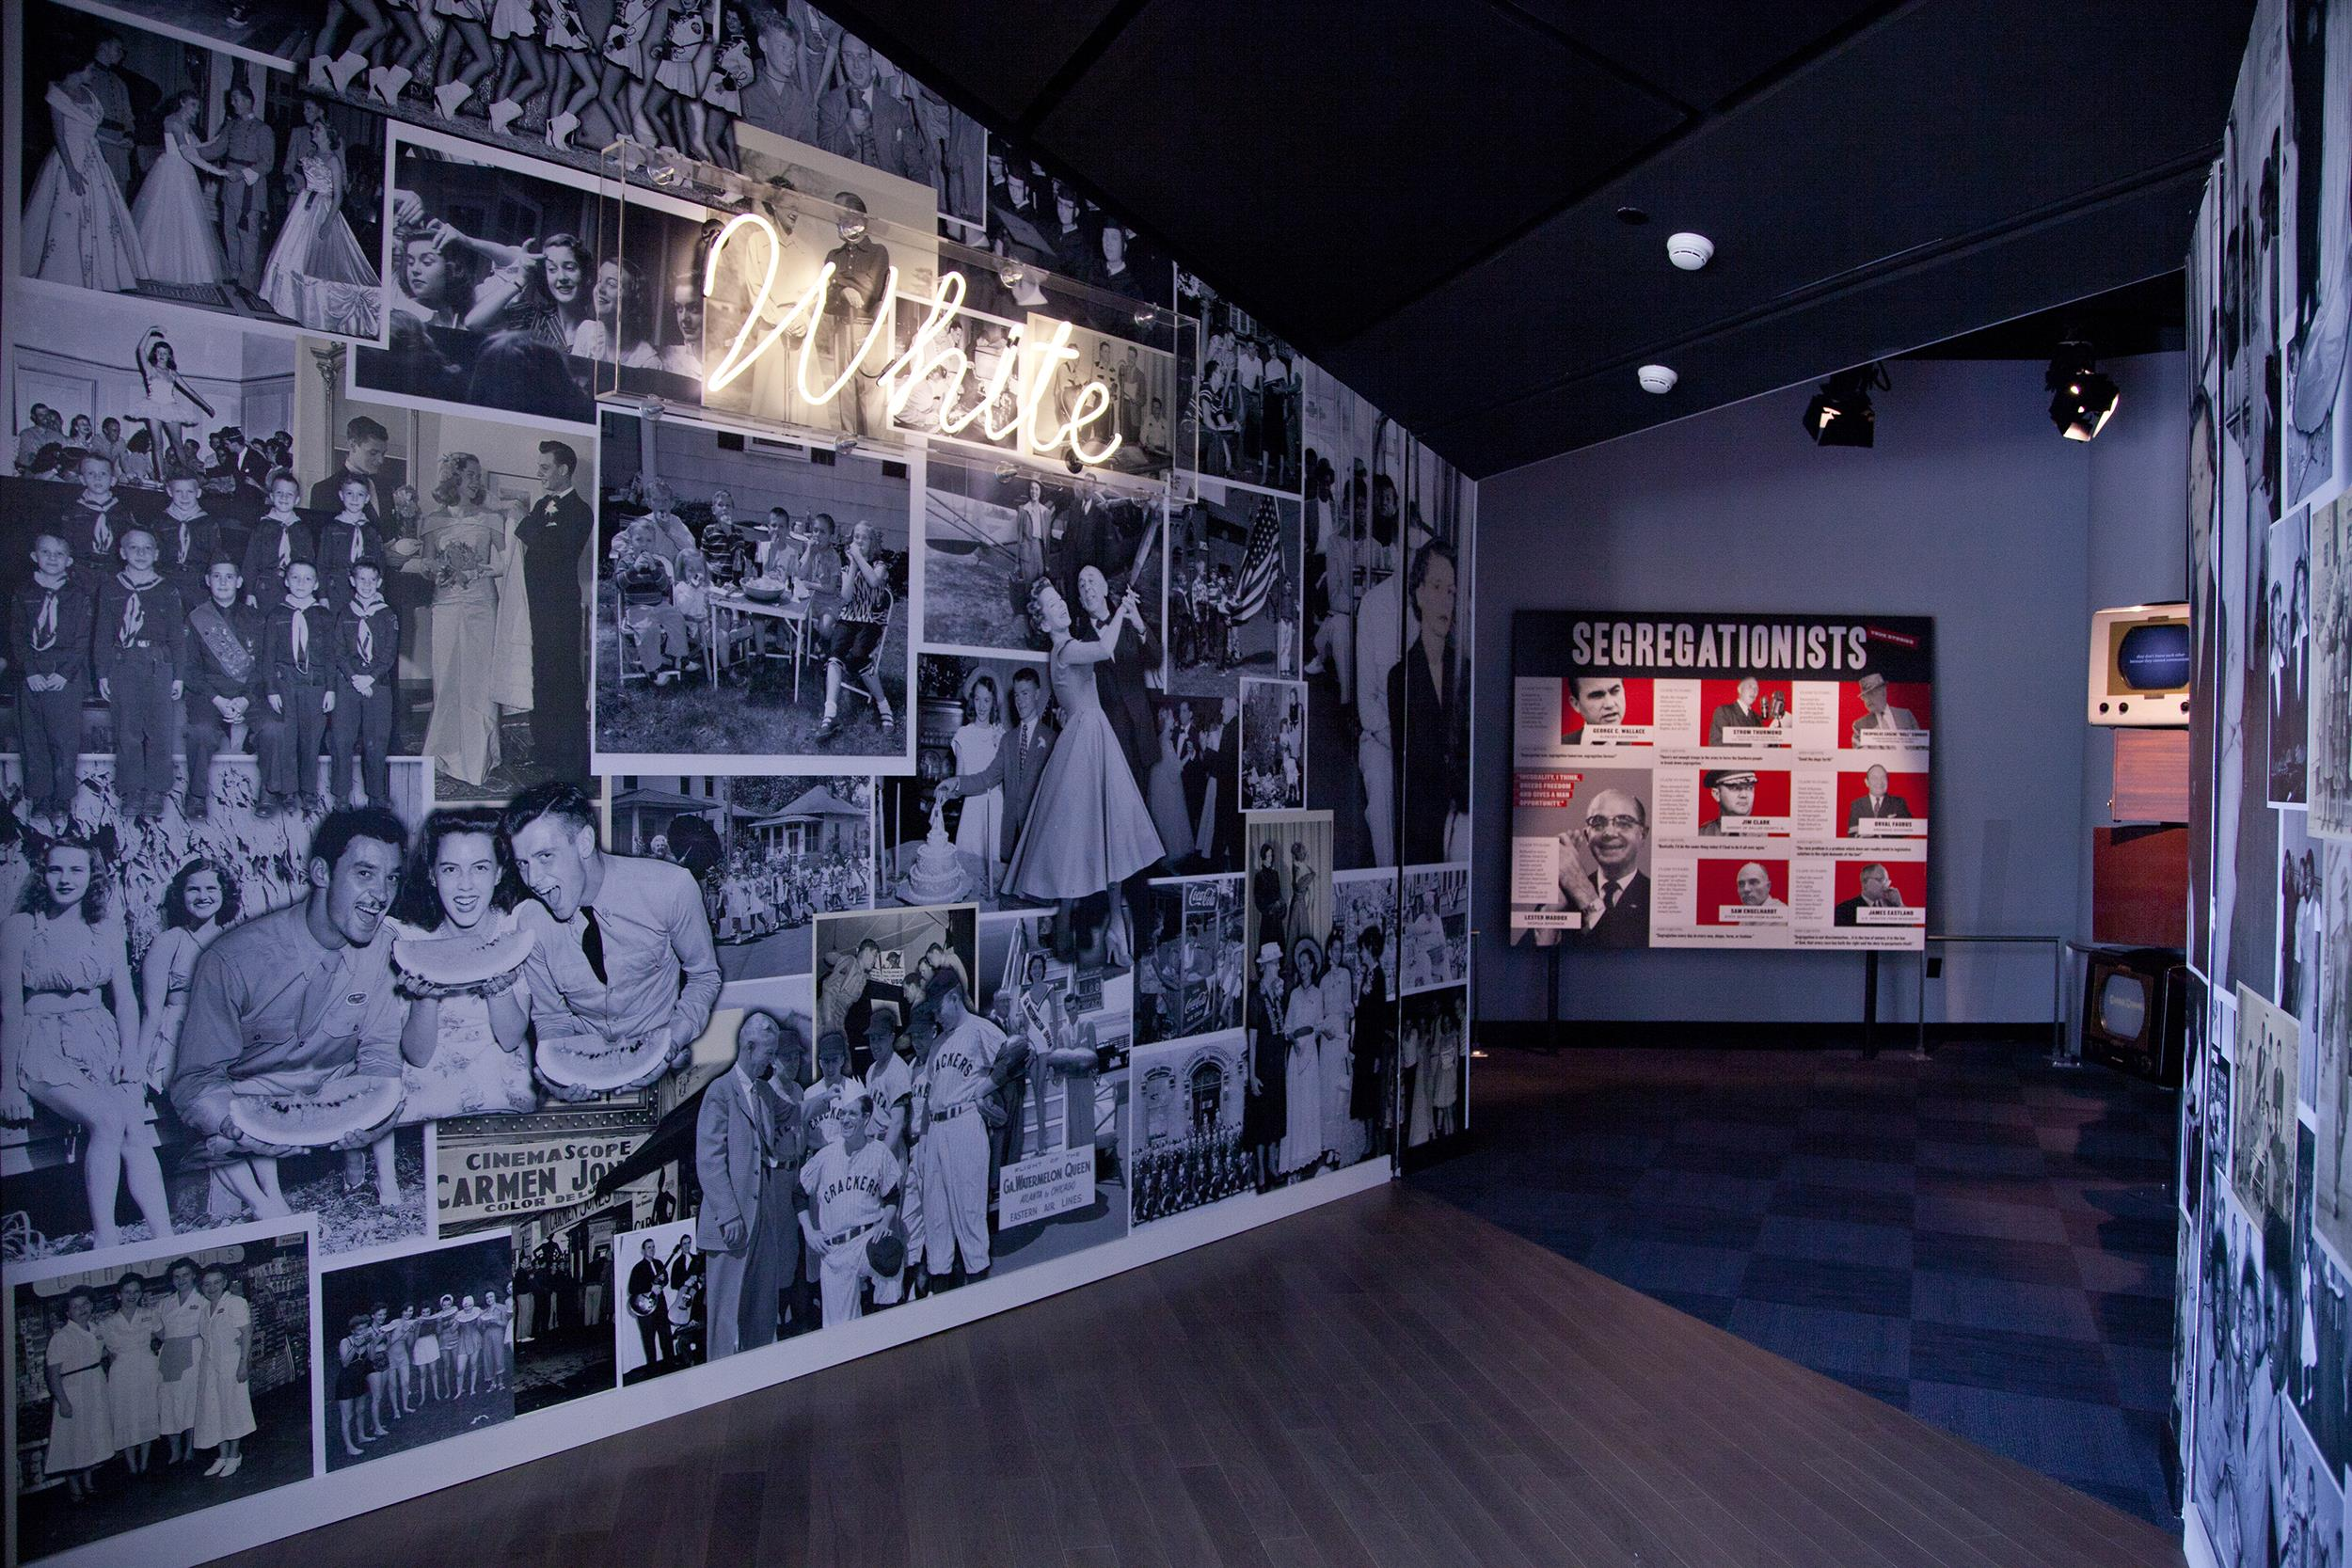 Image: A new civil rights museum officially opened to the public on June 23 in Atlanta, Ga.